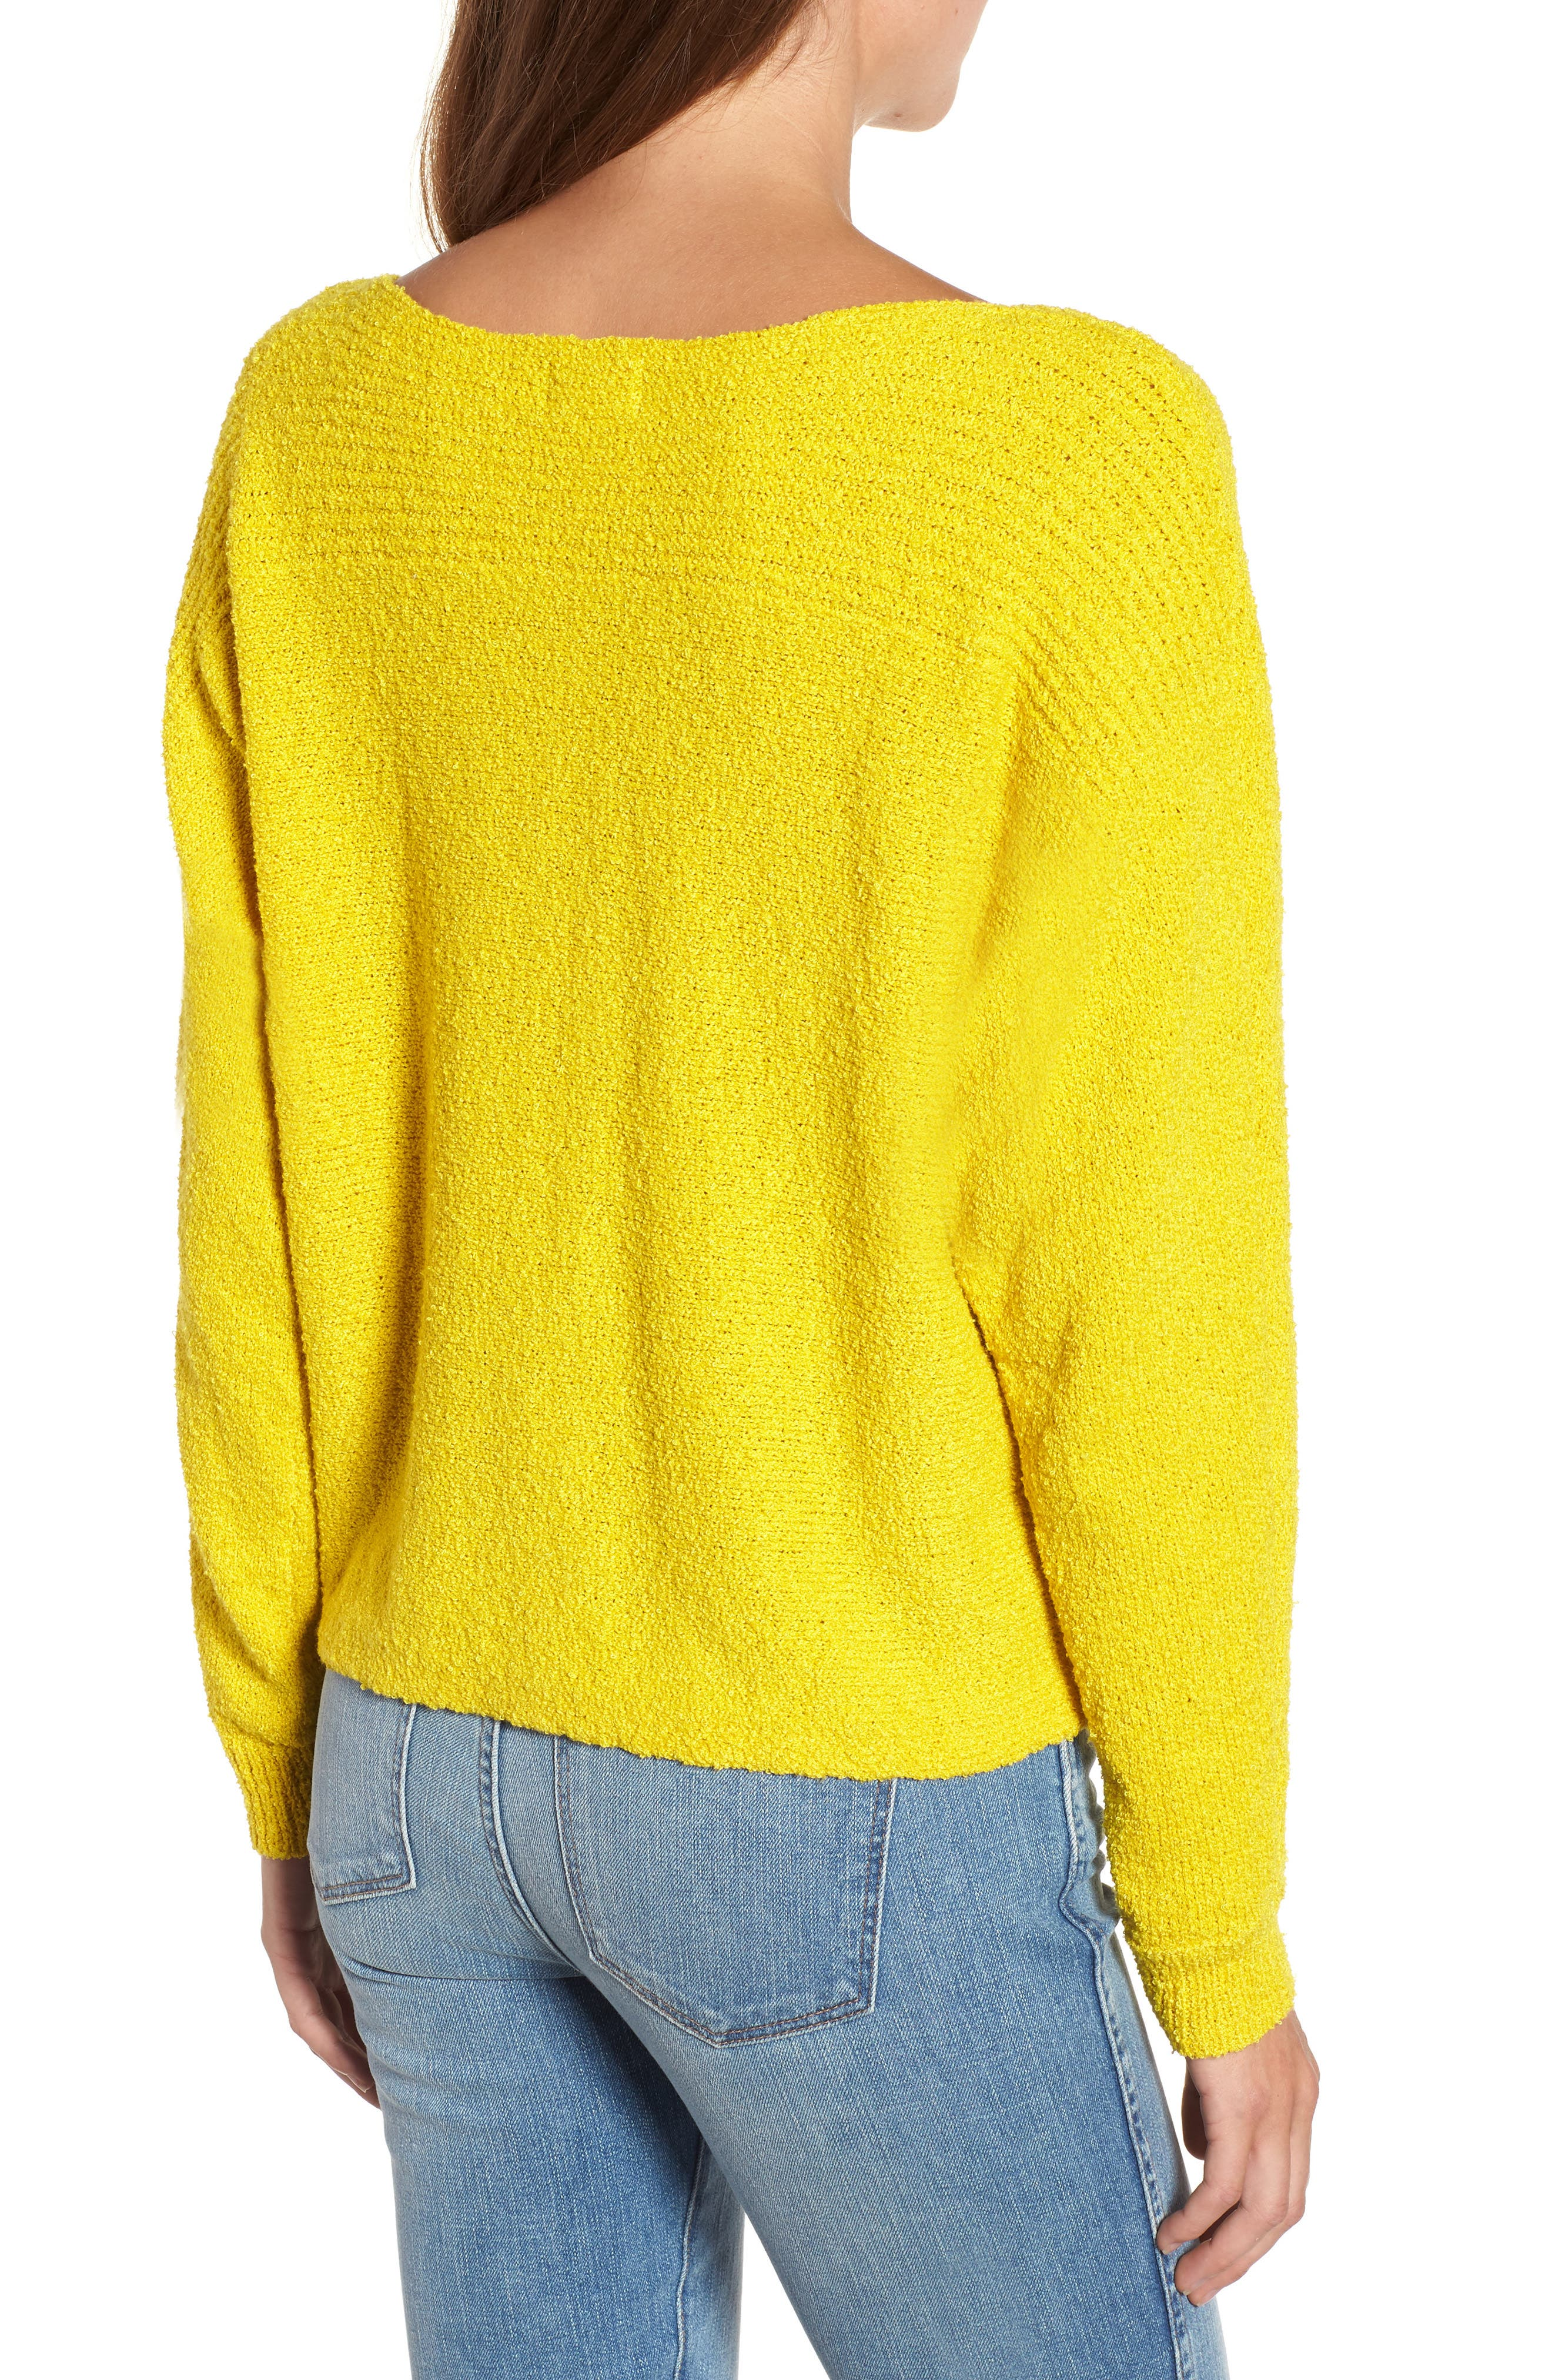 Calson<sup>®</sup> Dolman Sleeve Sweater,                             Alternate thumbnail 9, color,